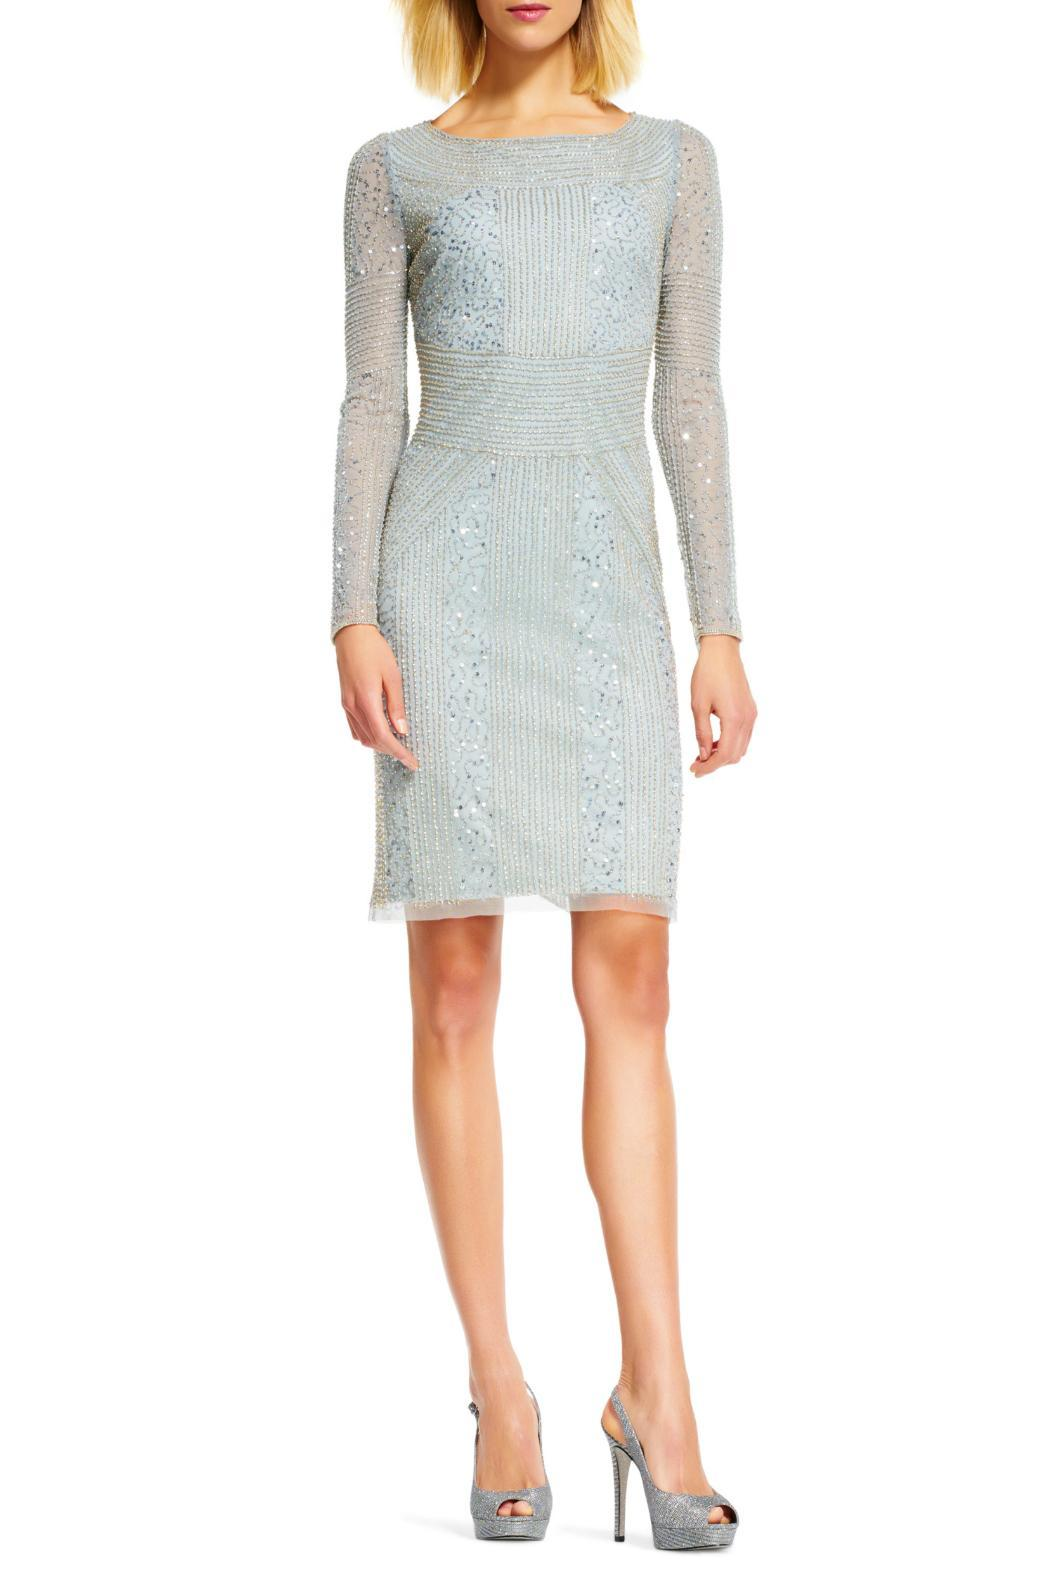 Adrianna Papell Long Sleeves Beaded Dress - Front Full Image